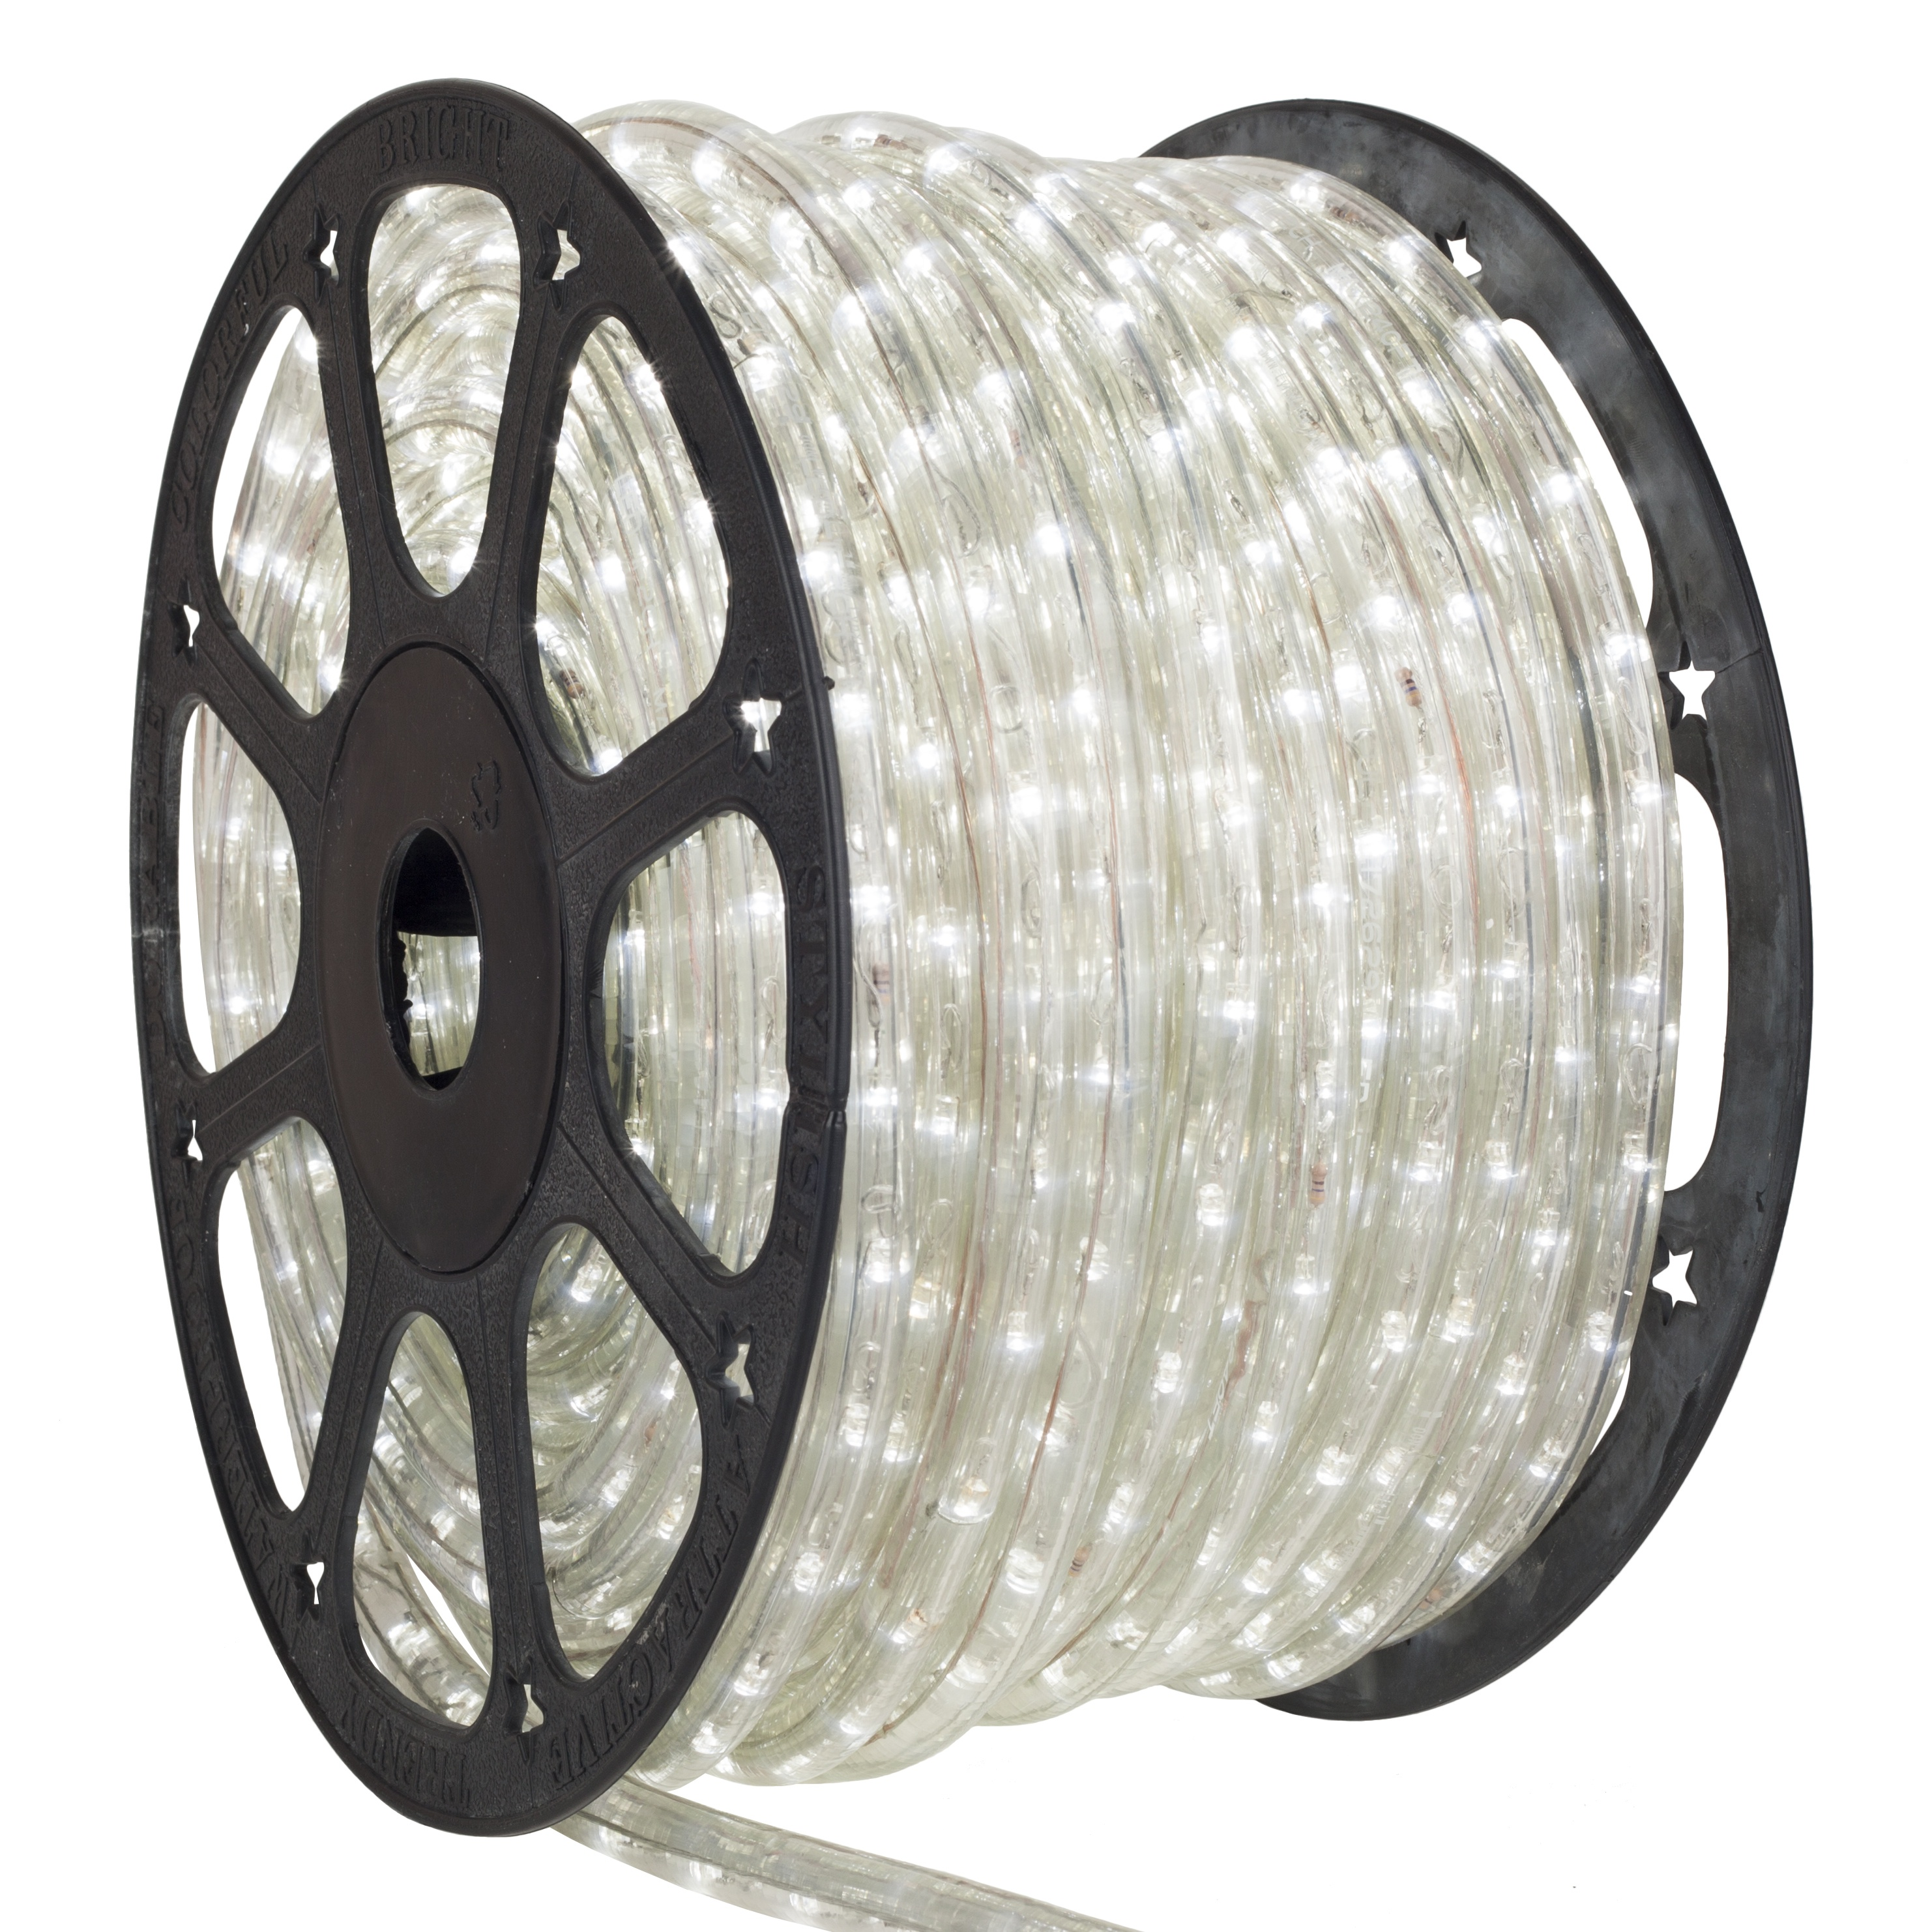 12 Volt Led Lights For Homes: 150' Cool White LED Mini Rope